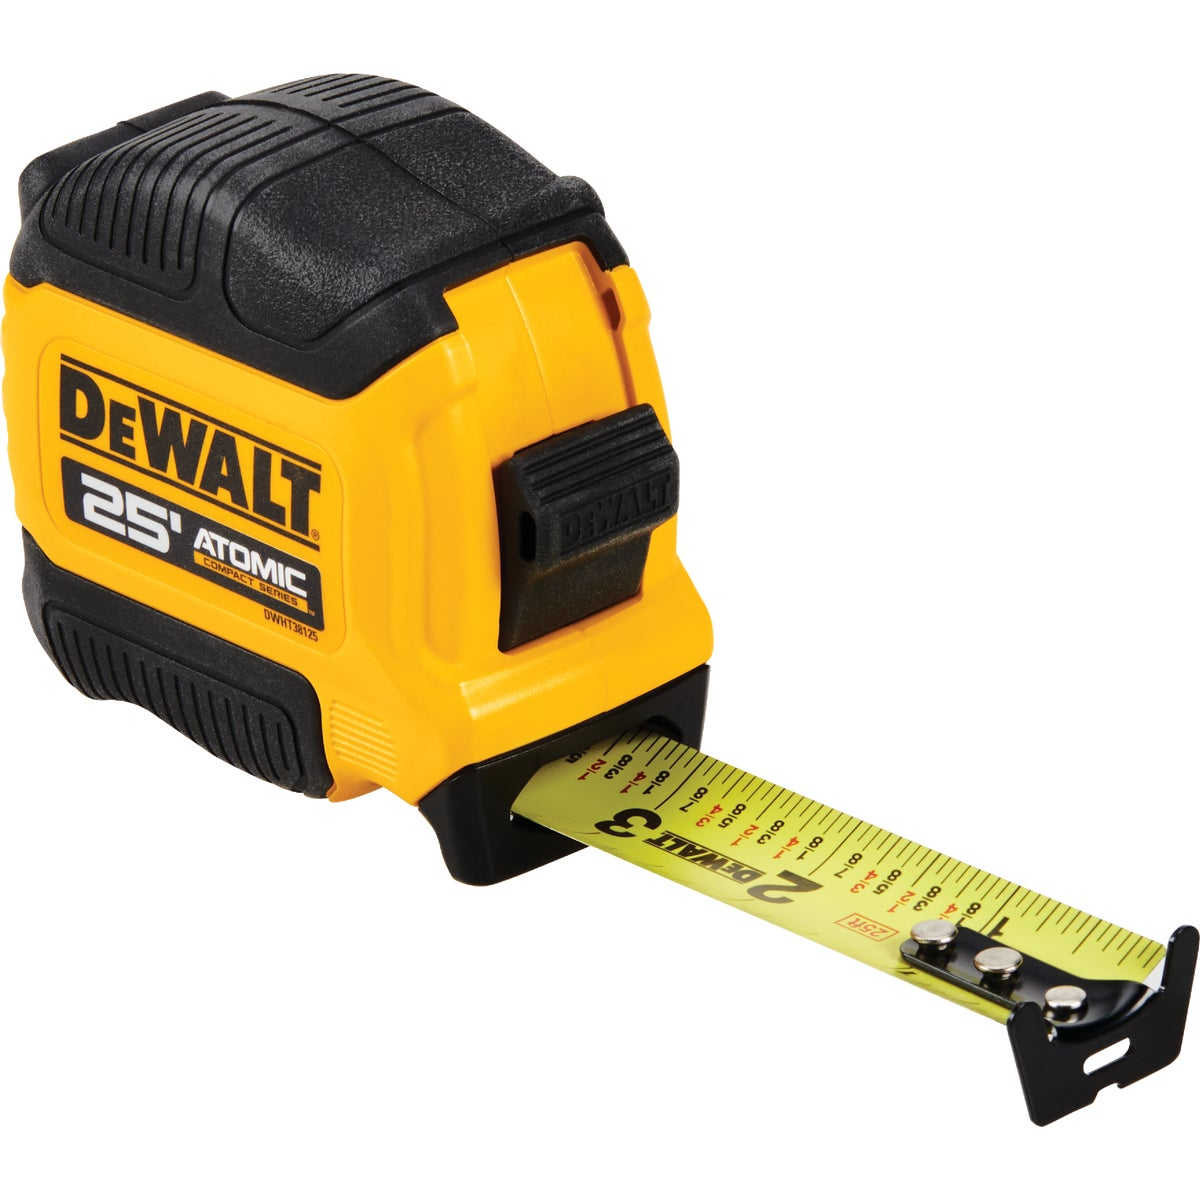 "1-1/8""X25' TAPE RULE - DWHT33373L by Stanley Tools"